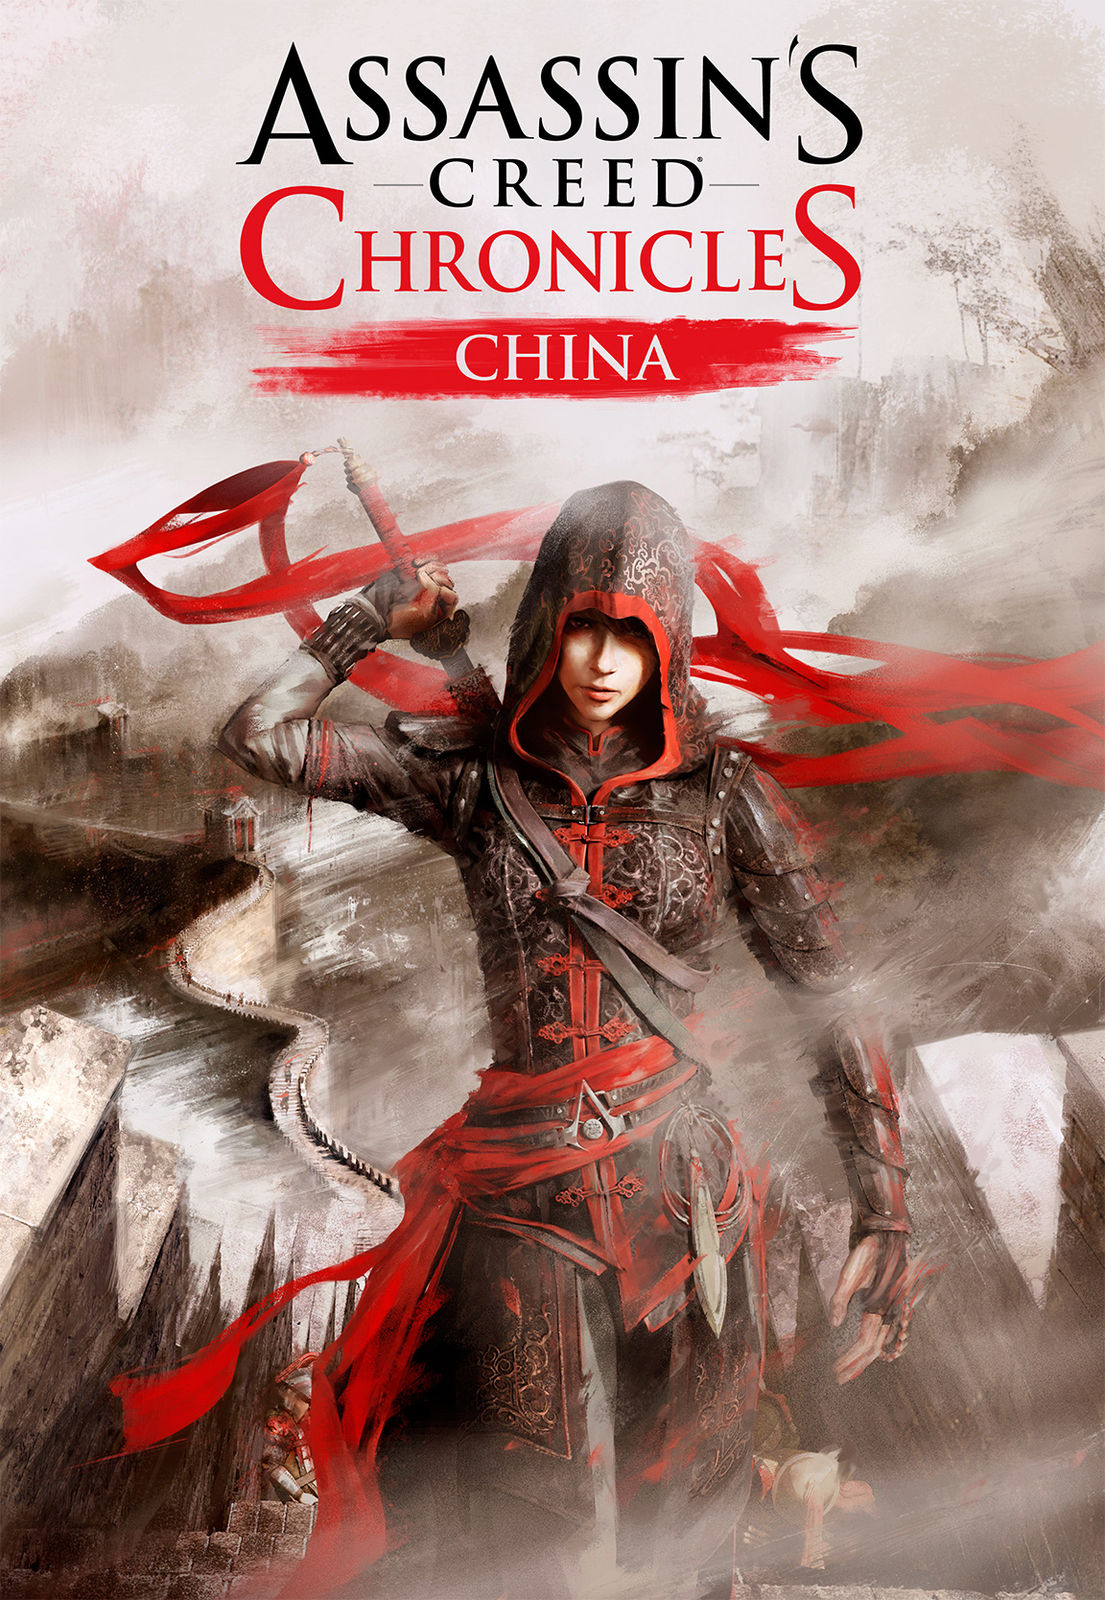 Assassin's Creed Chronicles: China (Uplay)